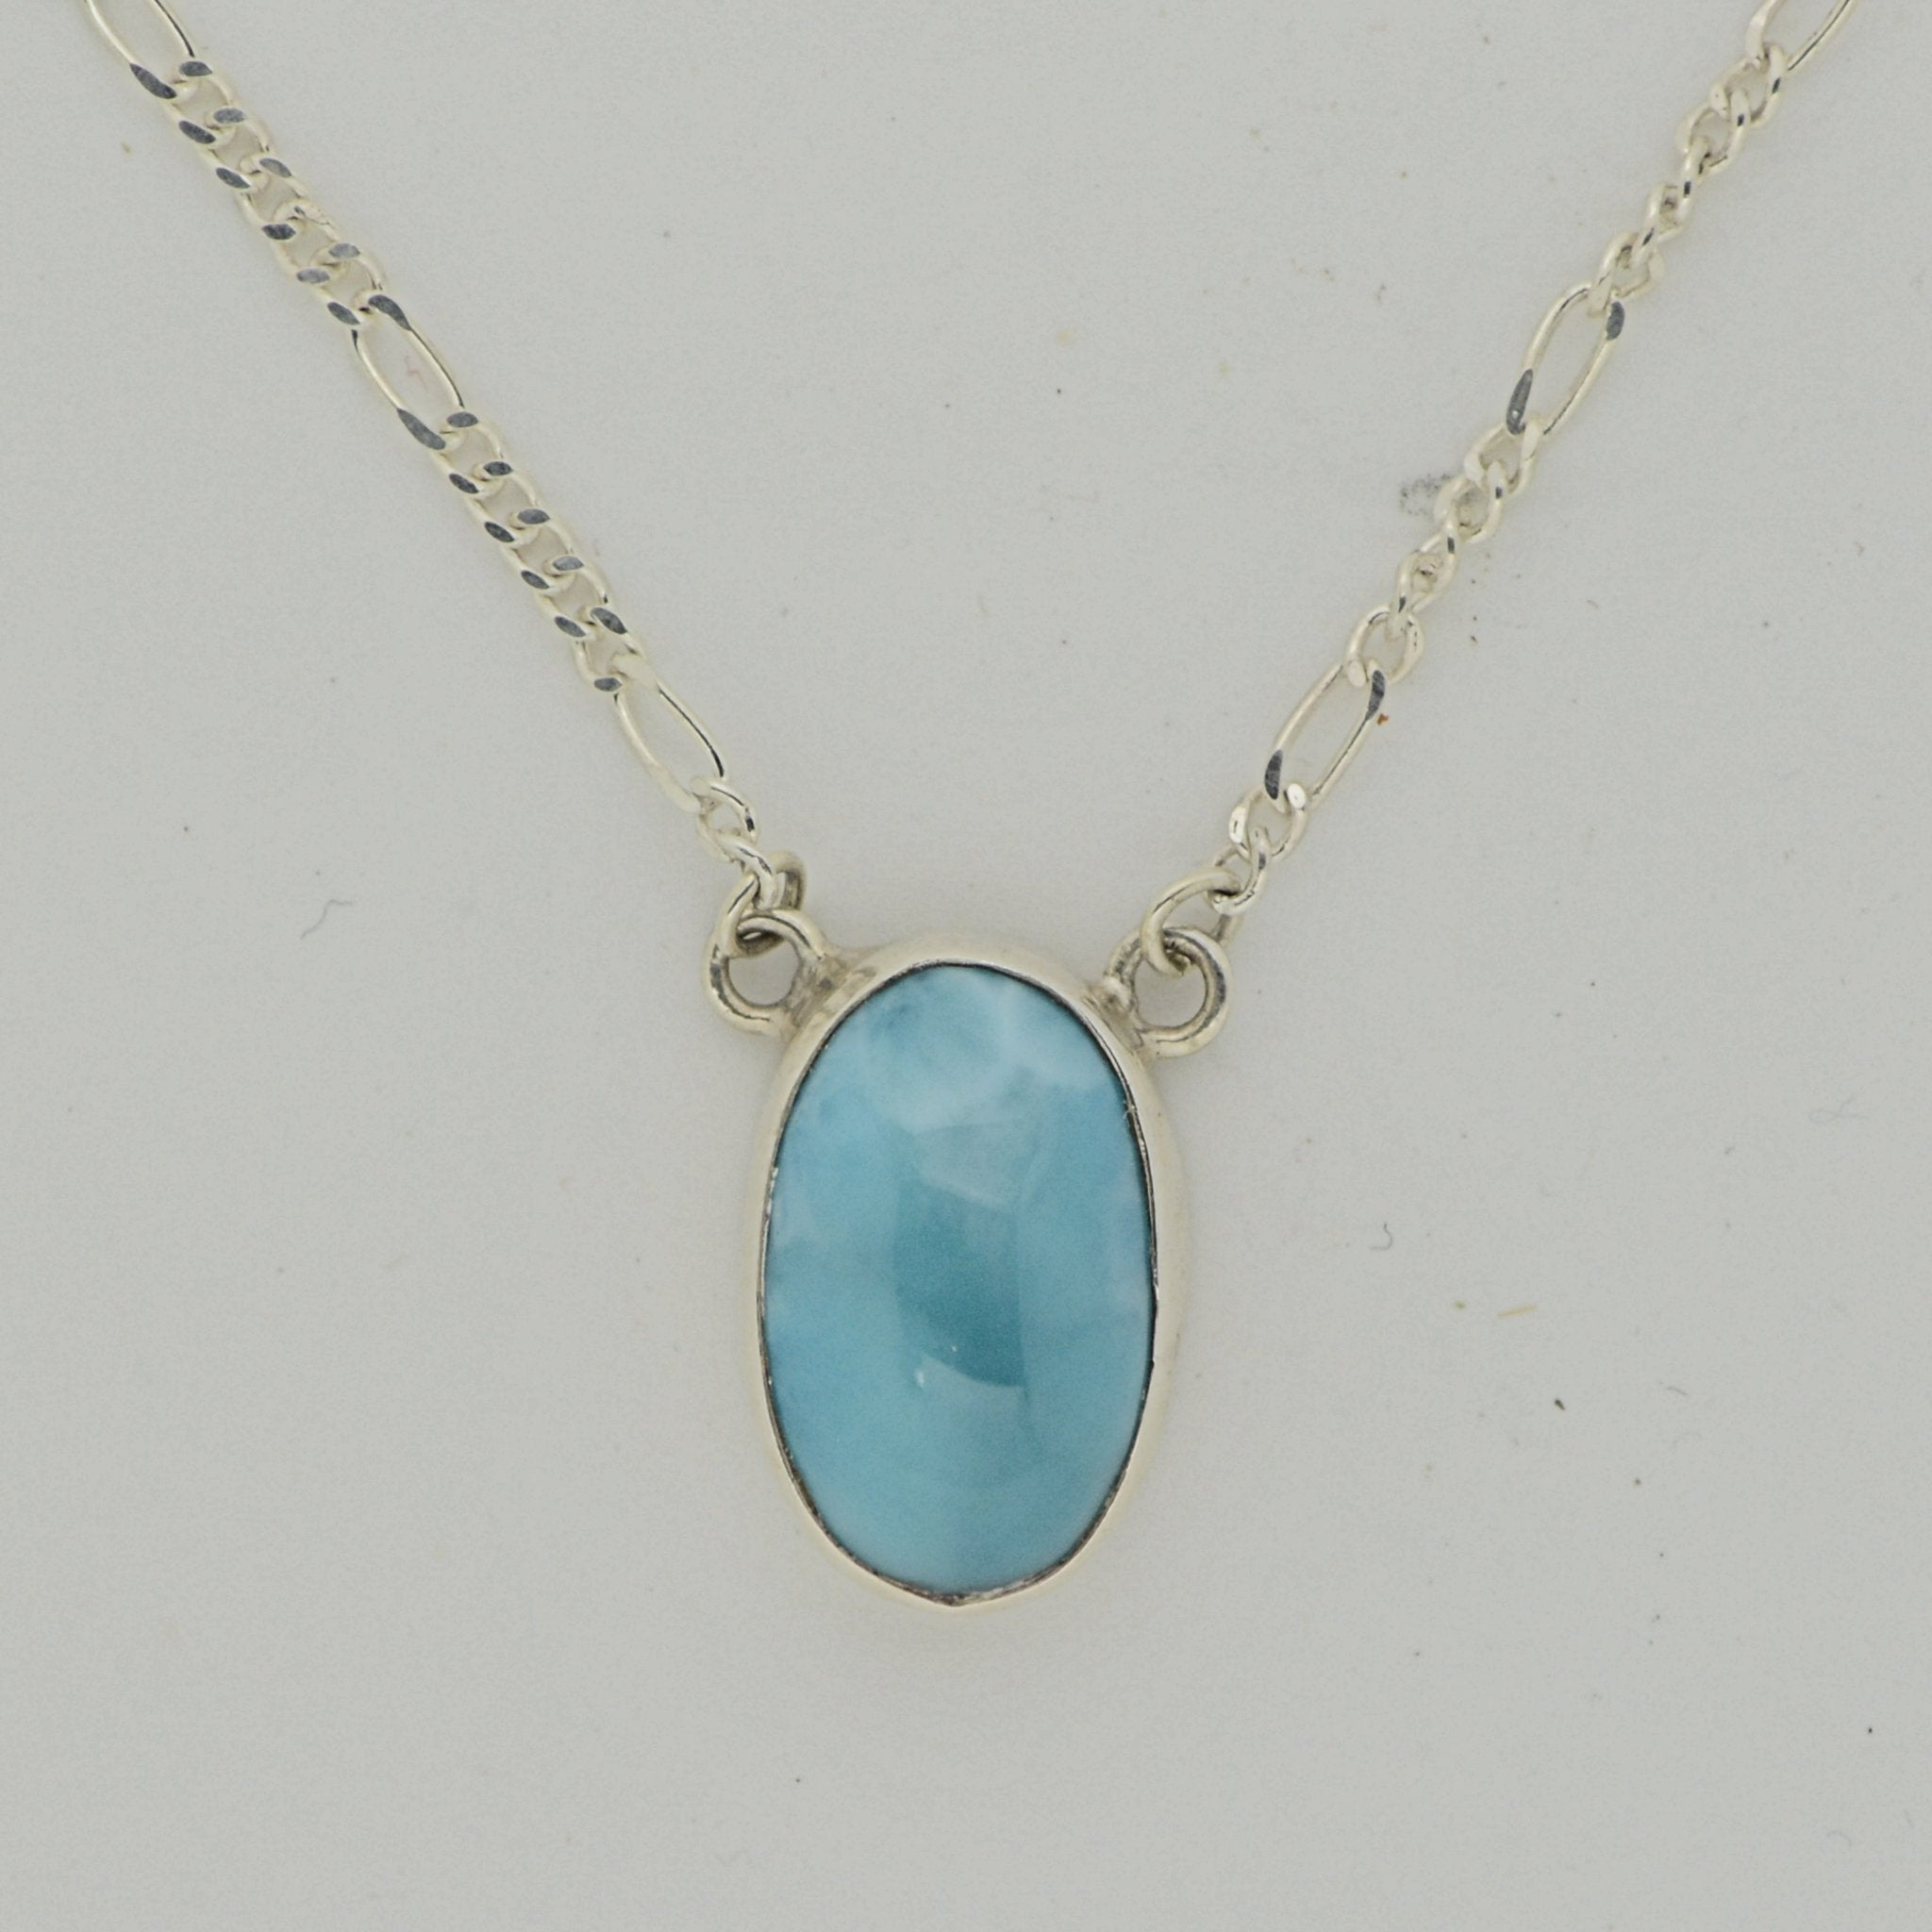 Medium One Stone Larimar Necklace  9.3g